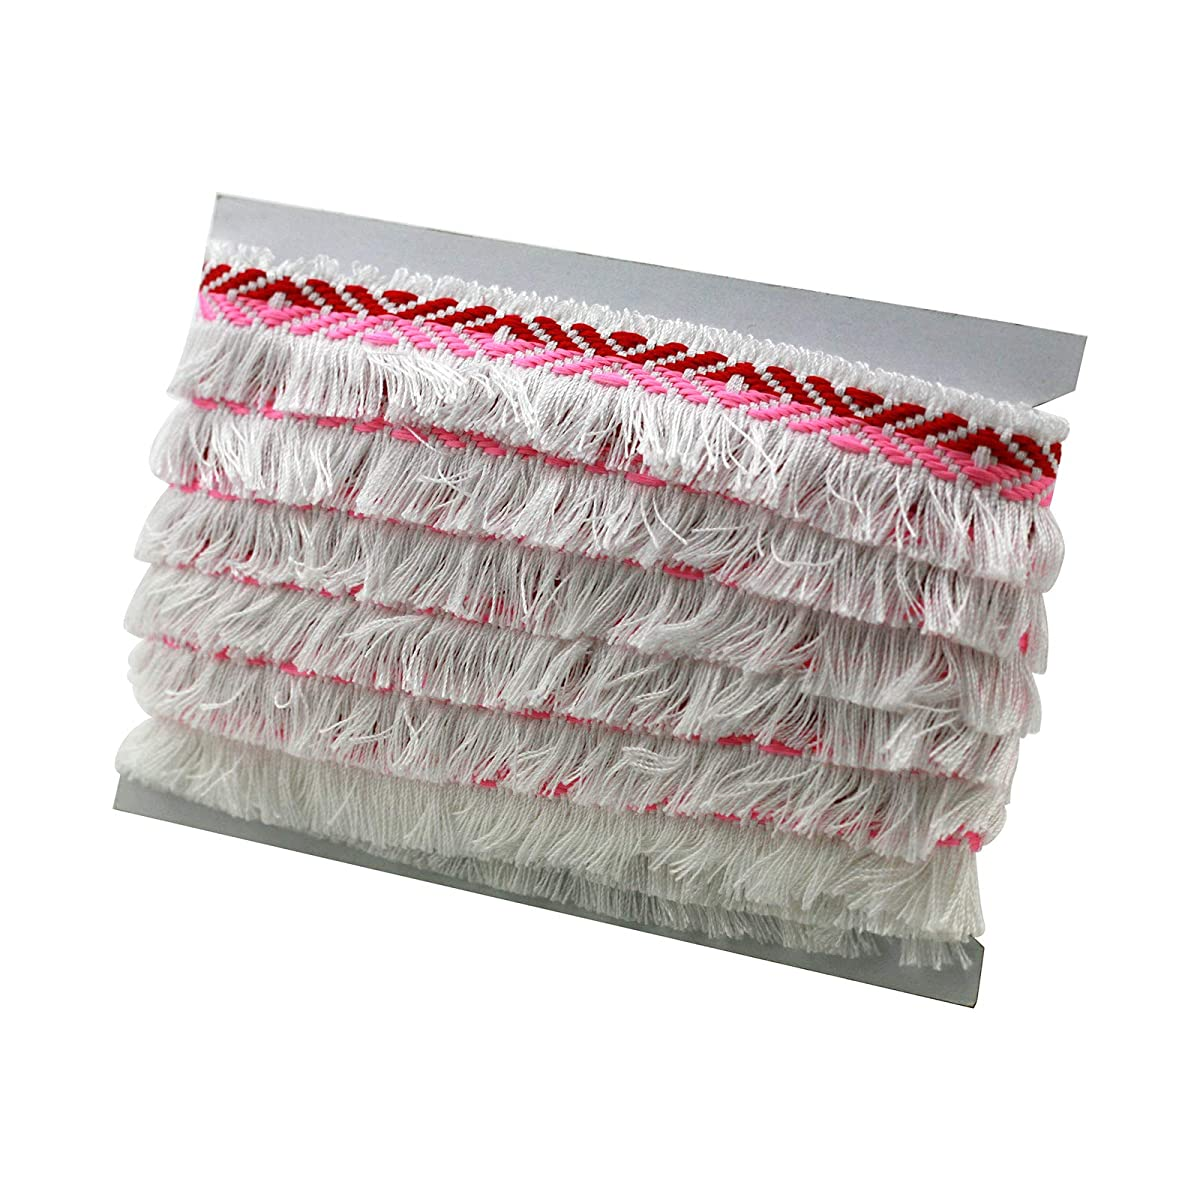 Braid Fringe Trim with One Edge Tassel, Polyester/PP Material, Pink/Red, 1.06inches x 10yd (2.7cm x 9.1m)